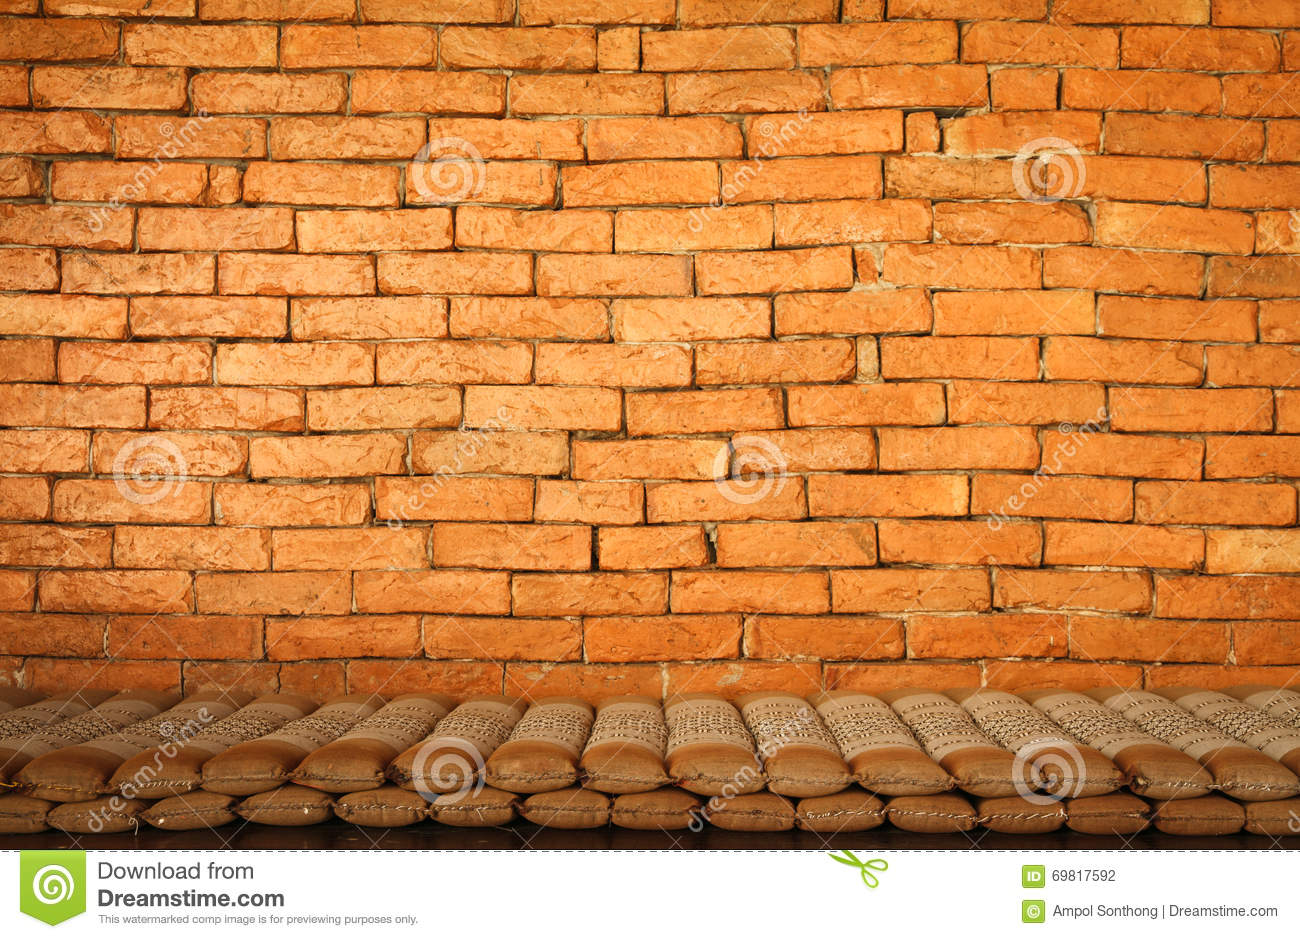 Retro Cushions Retro Cushions With Wall Brick Stock Photo Image Of Background